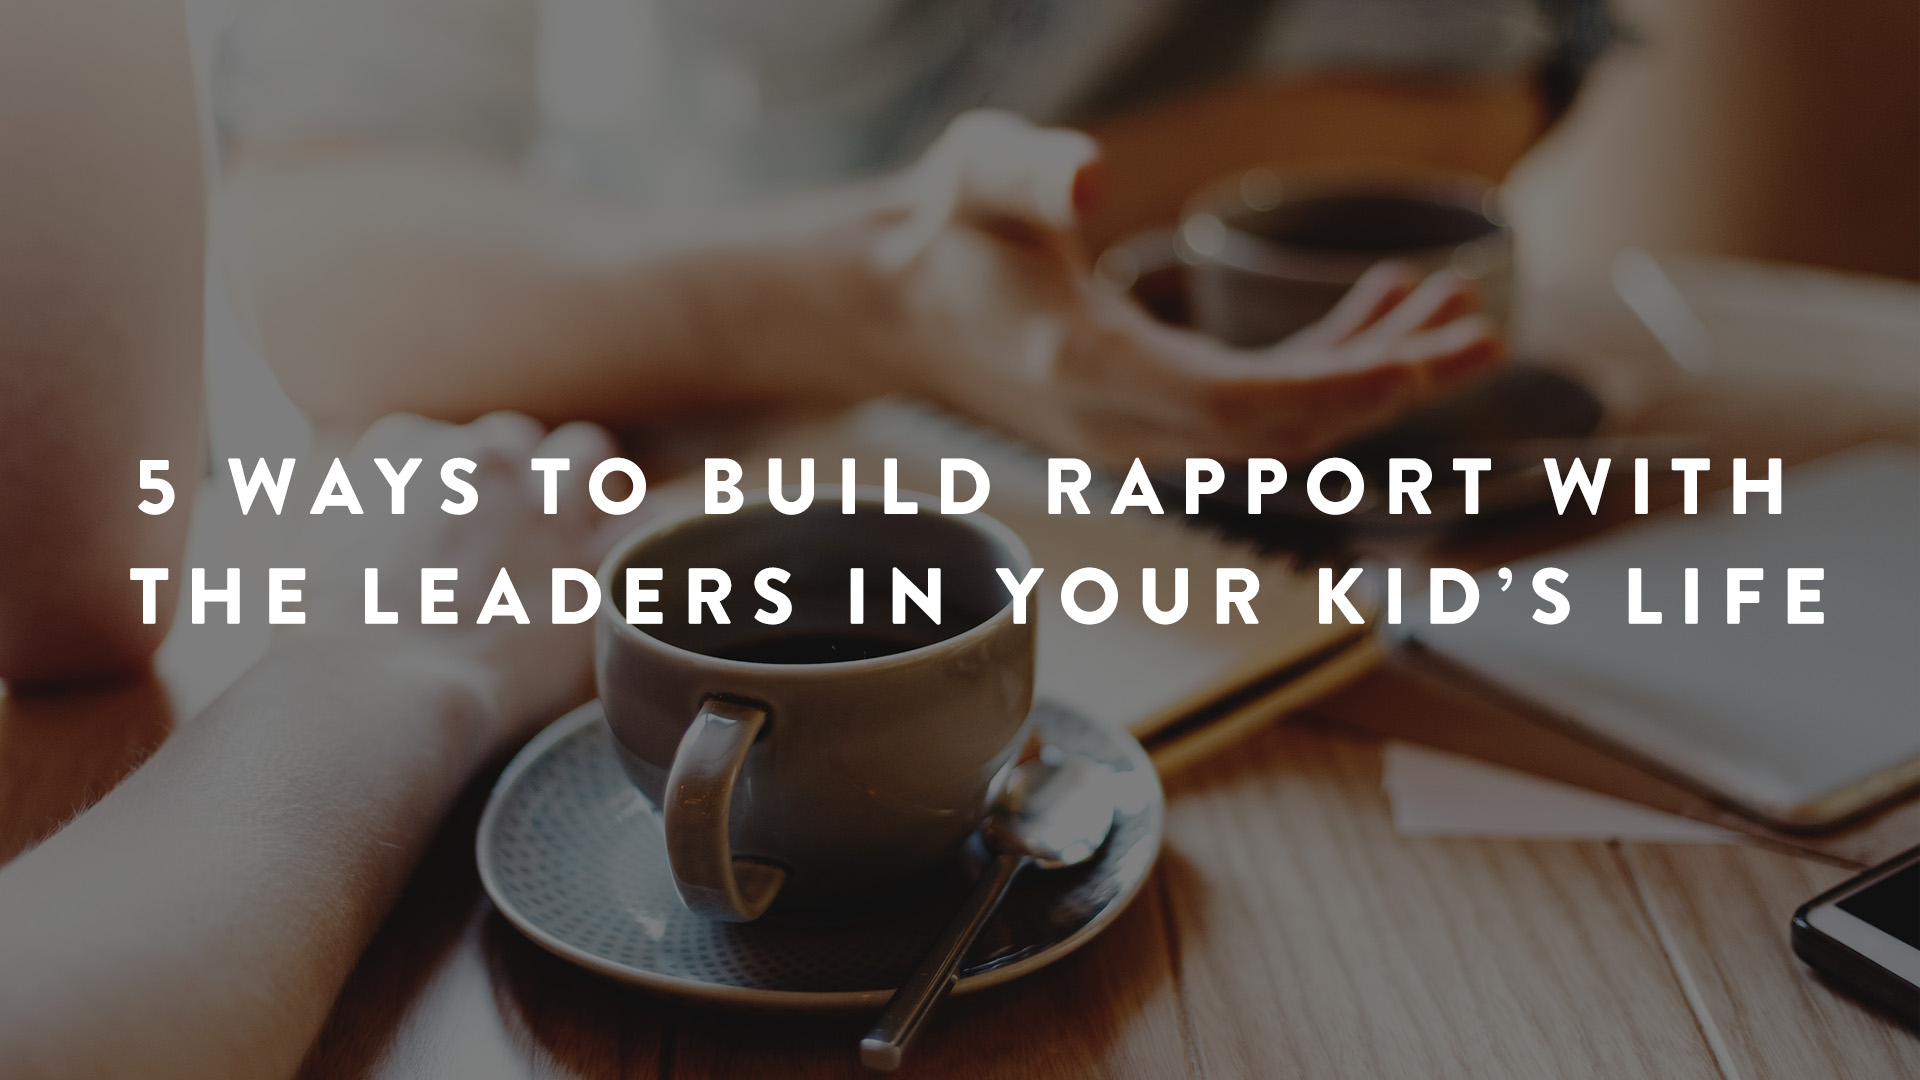 5 Ways to Build Rapport with the leaders in your kid's life